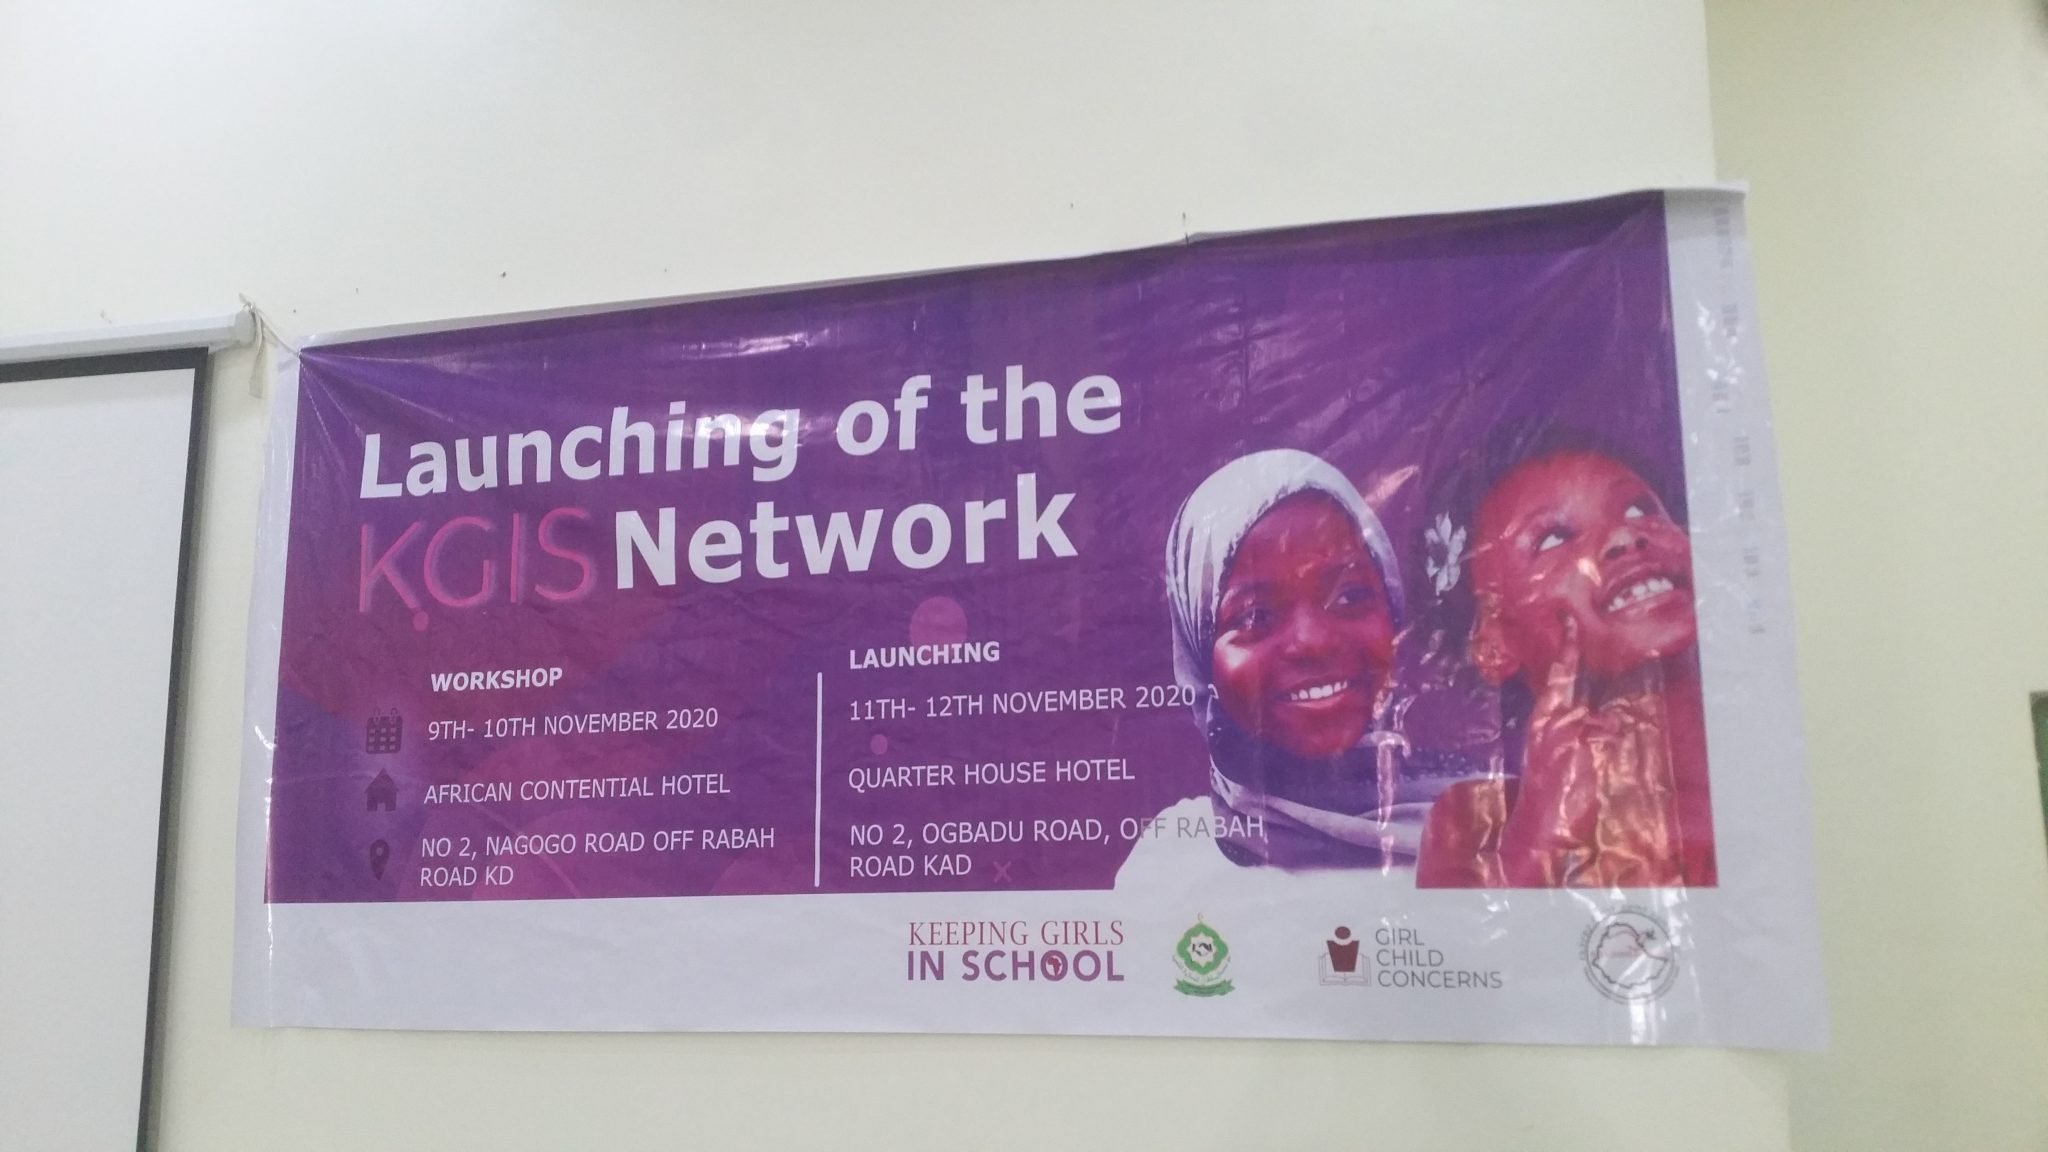 LAUNCHING OF THE KGIS NETWORK